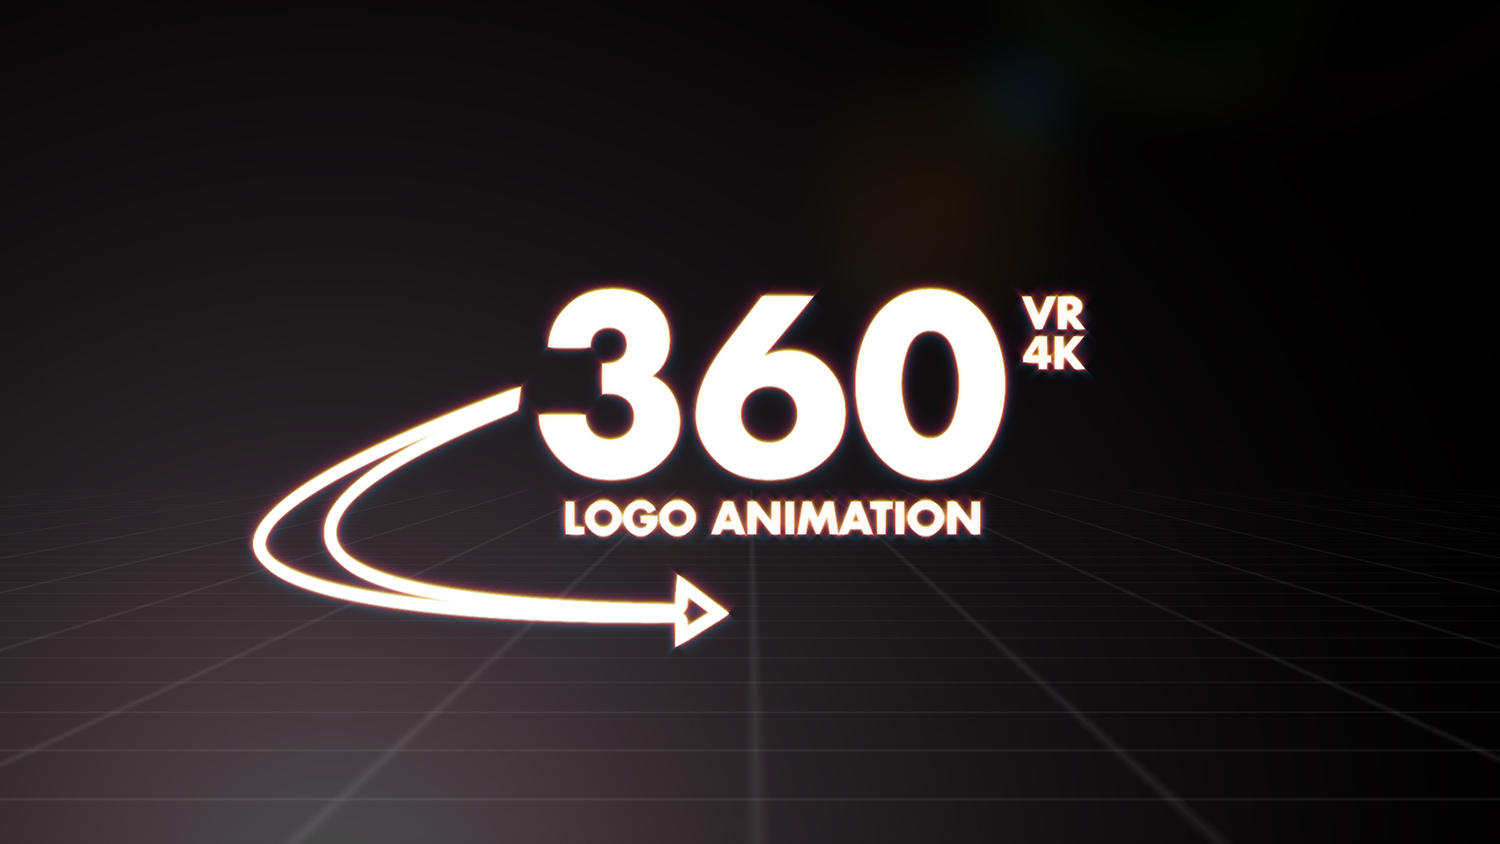 360 VR logo animation (4K) by BTreeM - 101915